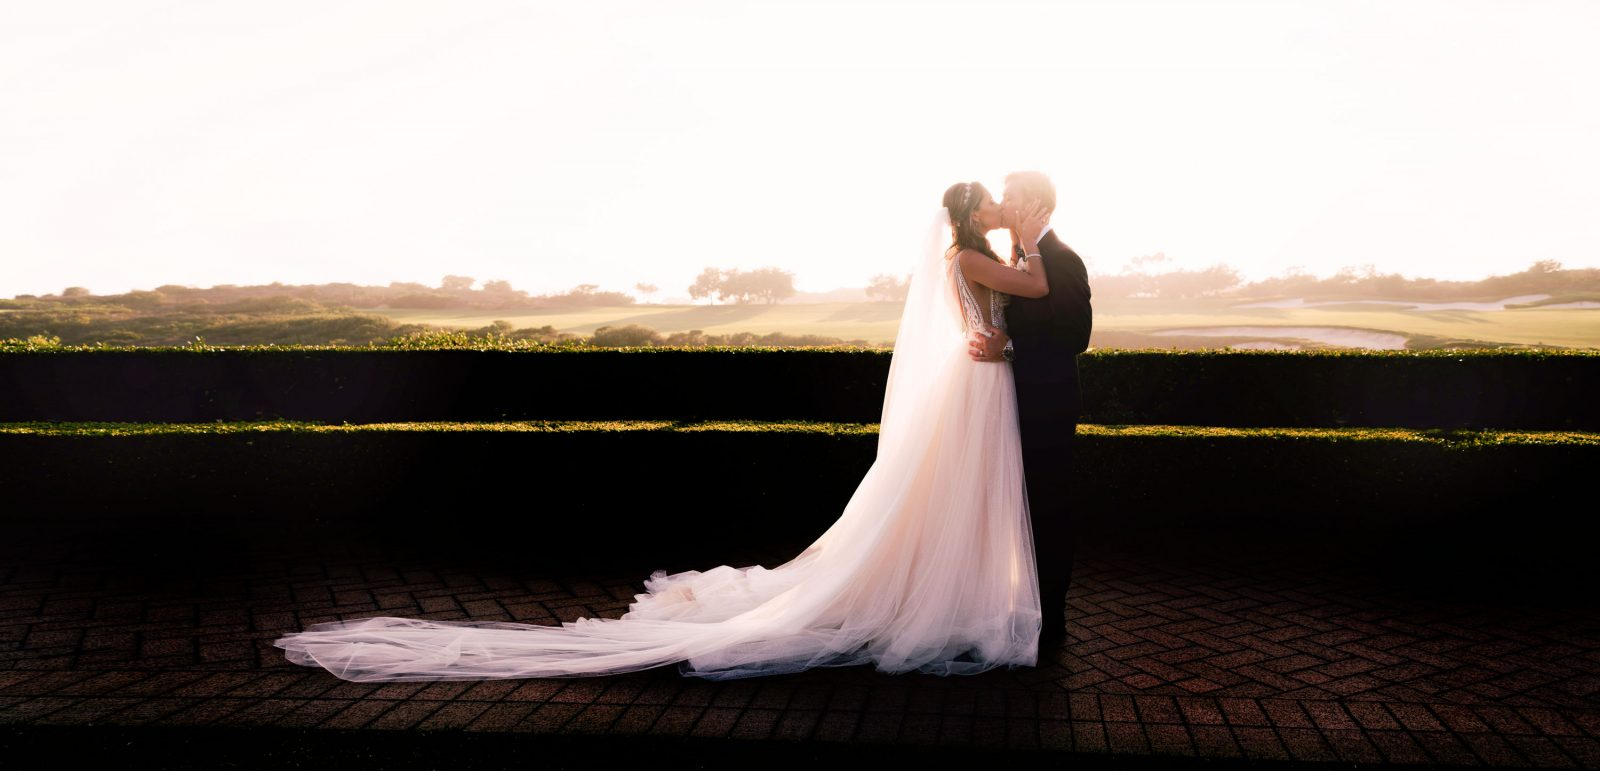 wedding-pelican-hill-newport-coast-photographer-alana-brent-abbf6051w